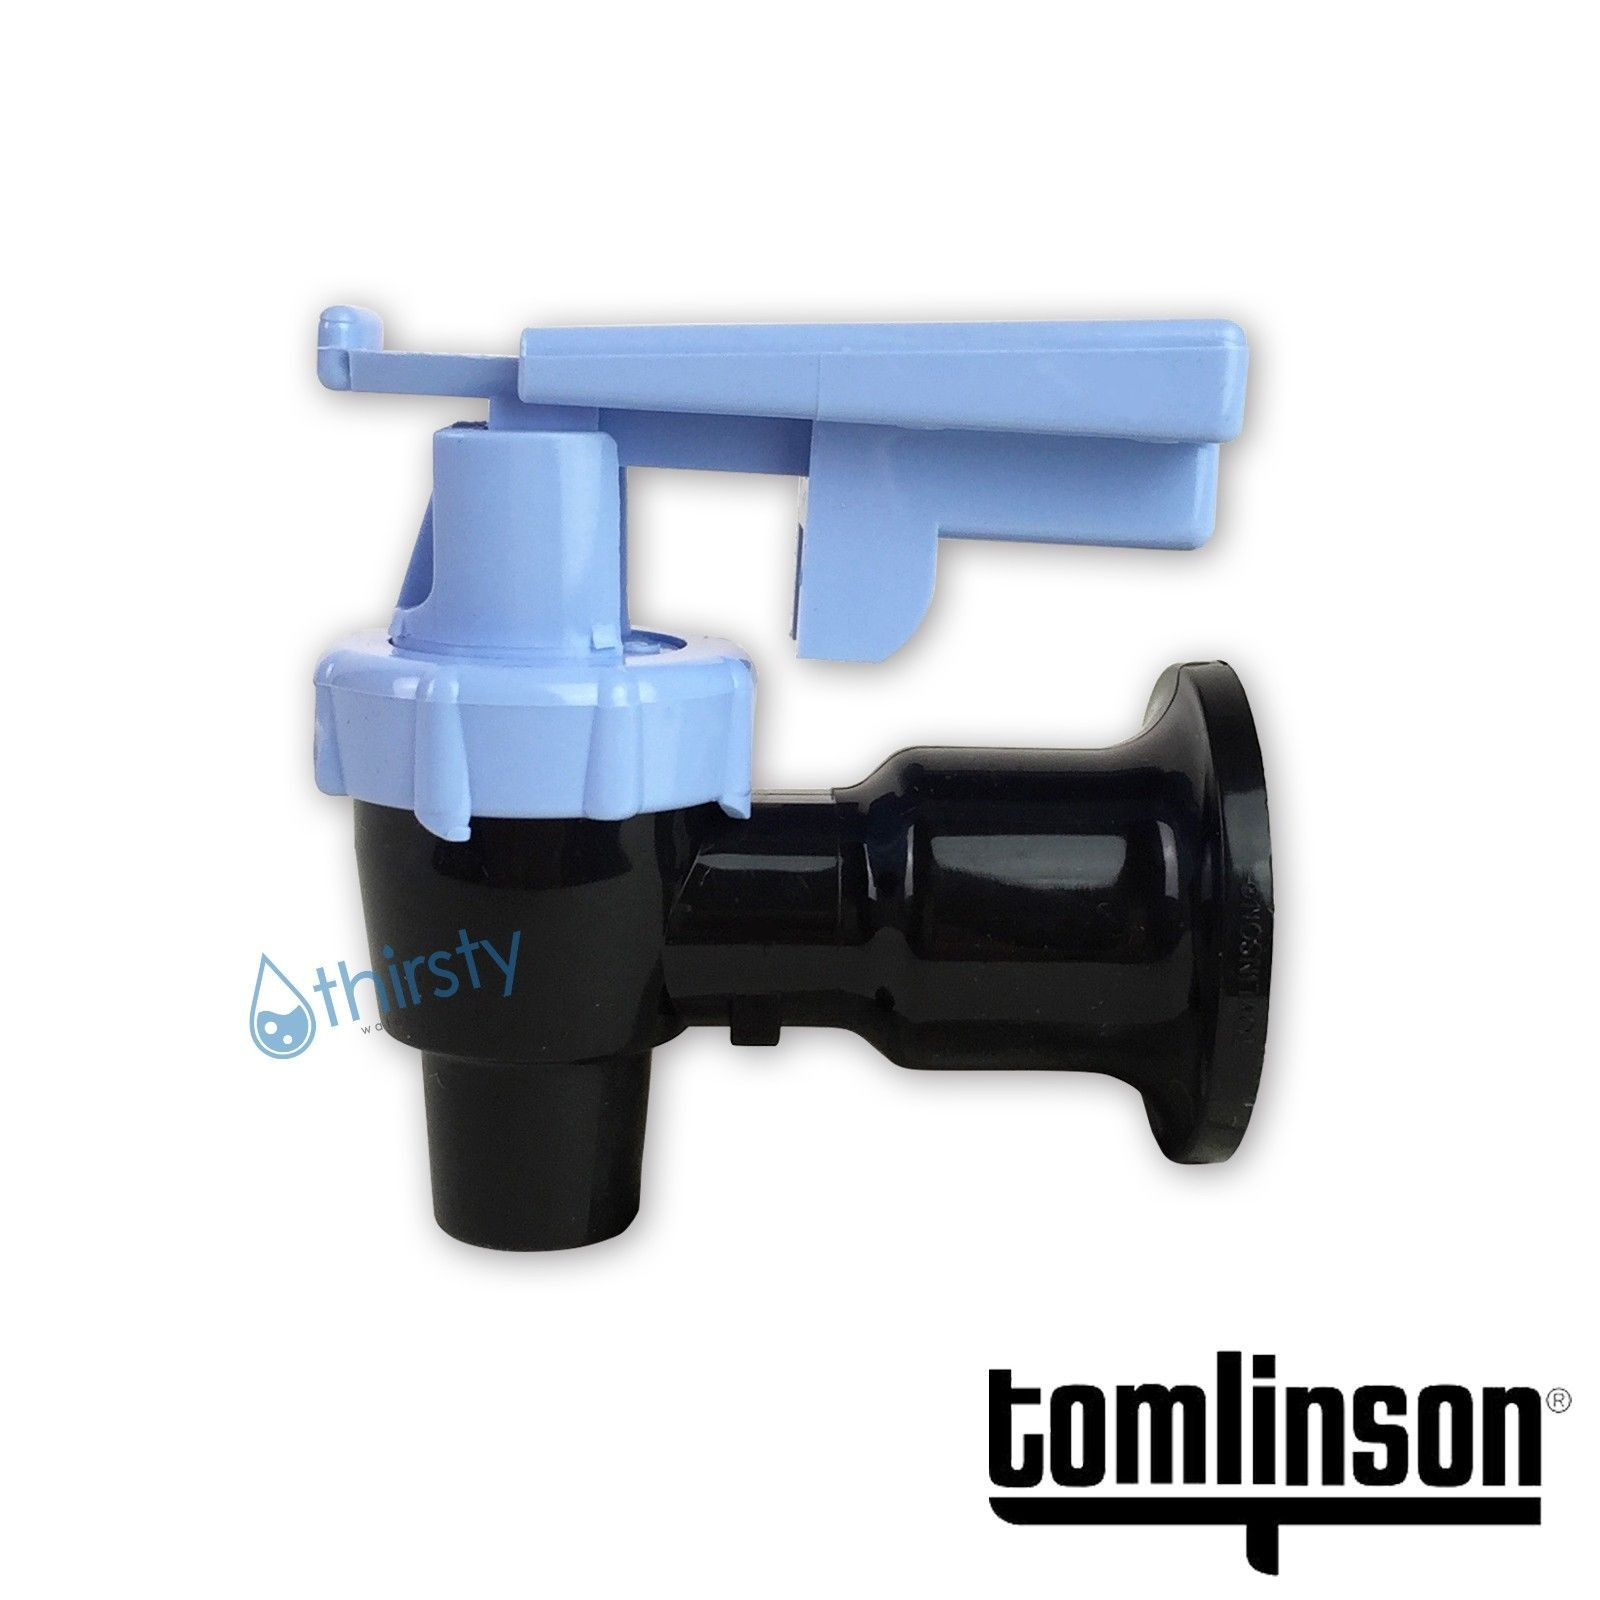 3 Pack) Water Cooler Faucet Spigot and 50 similar items